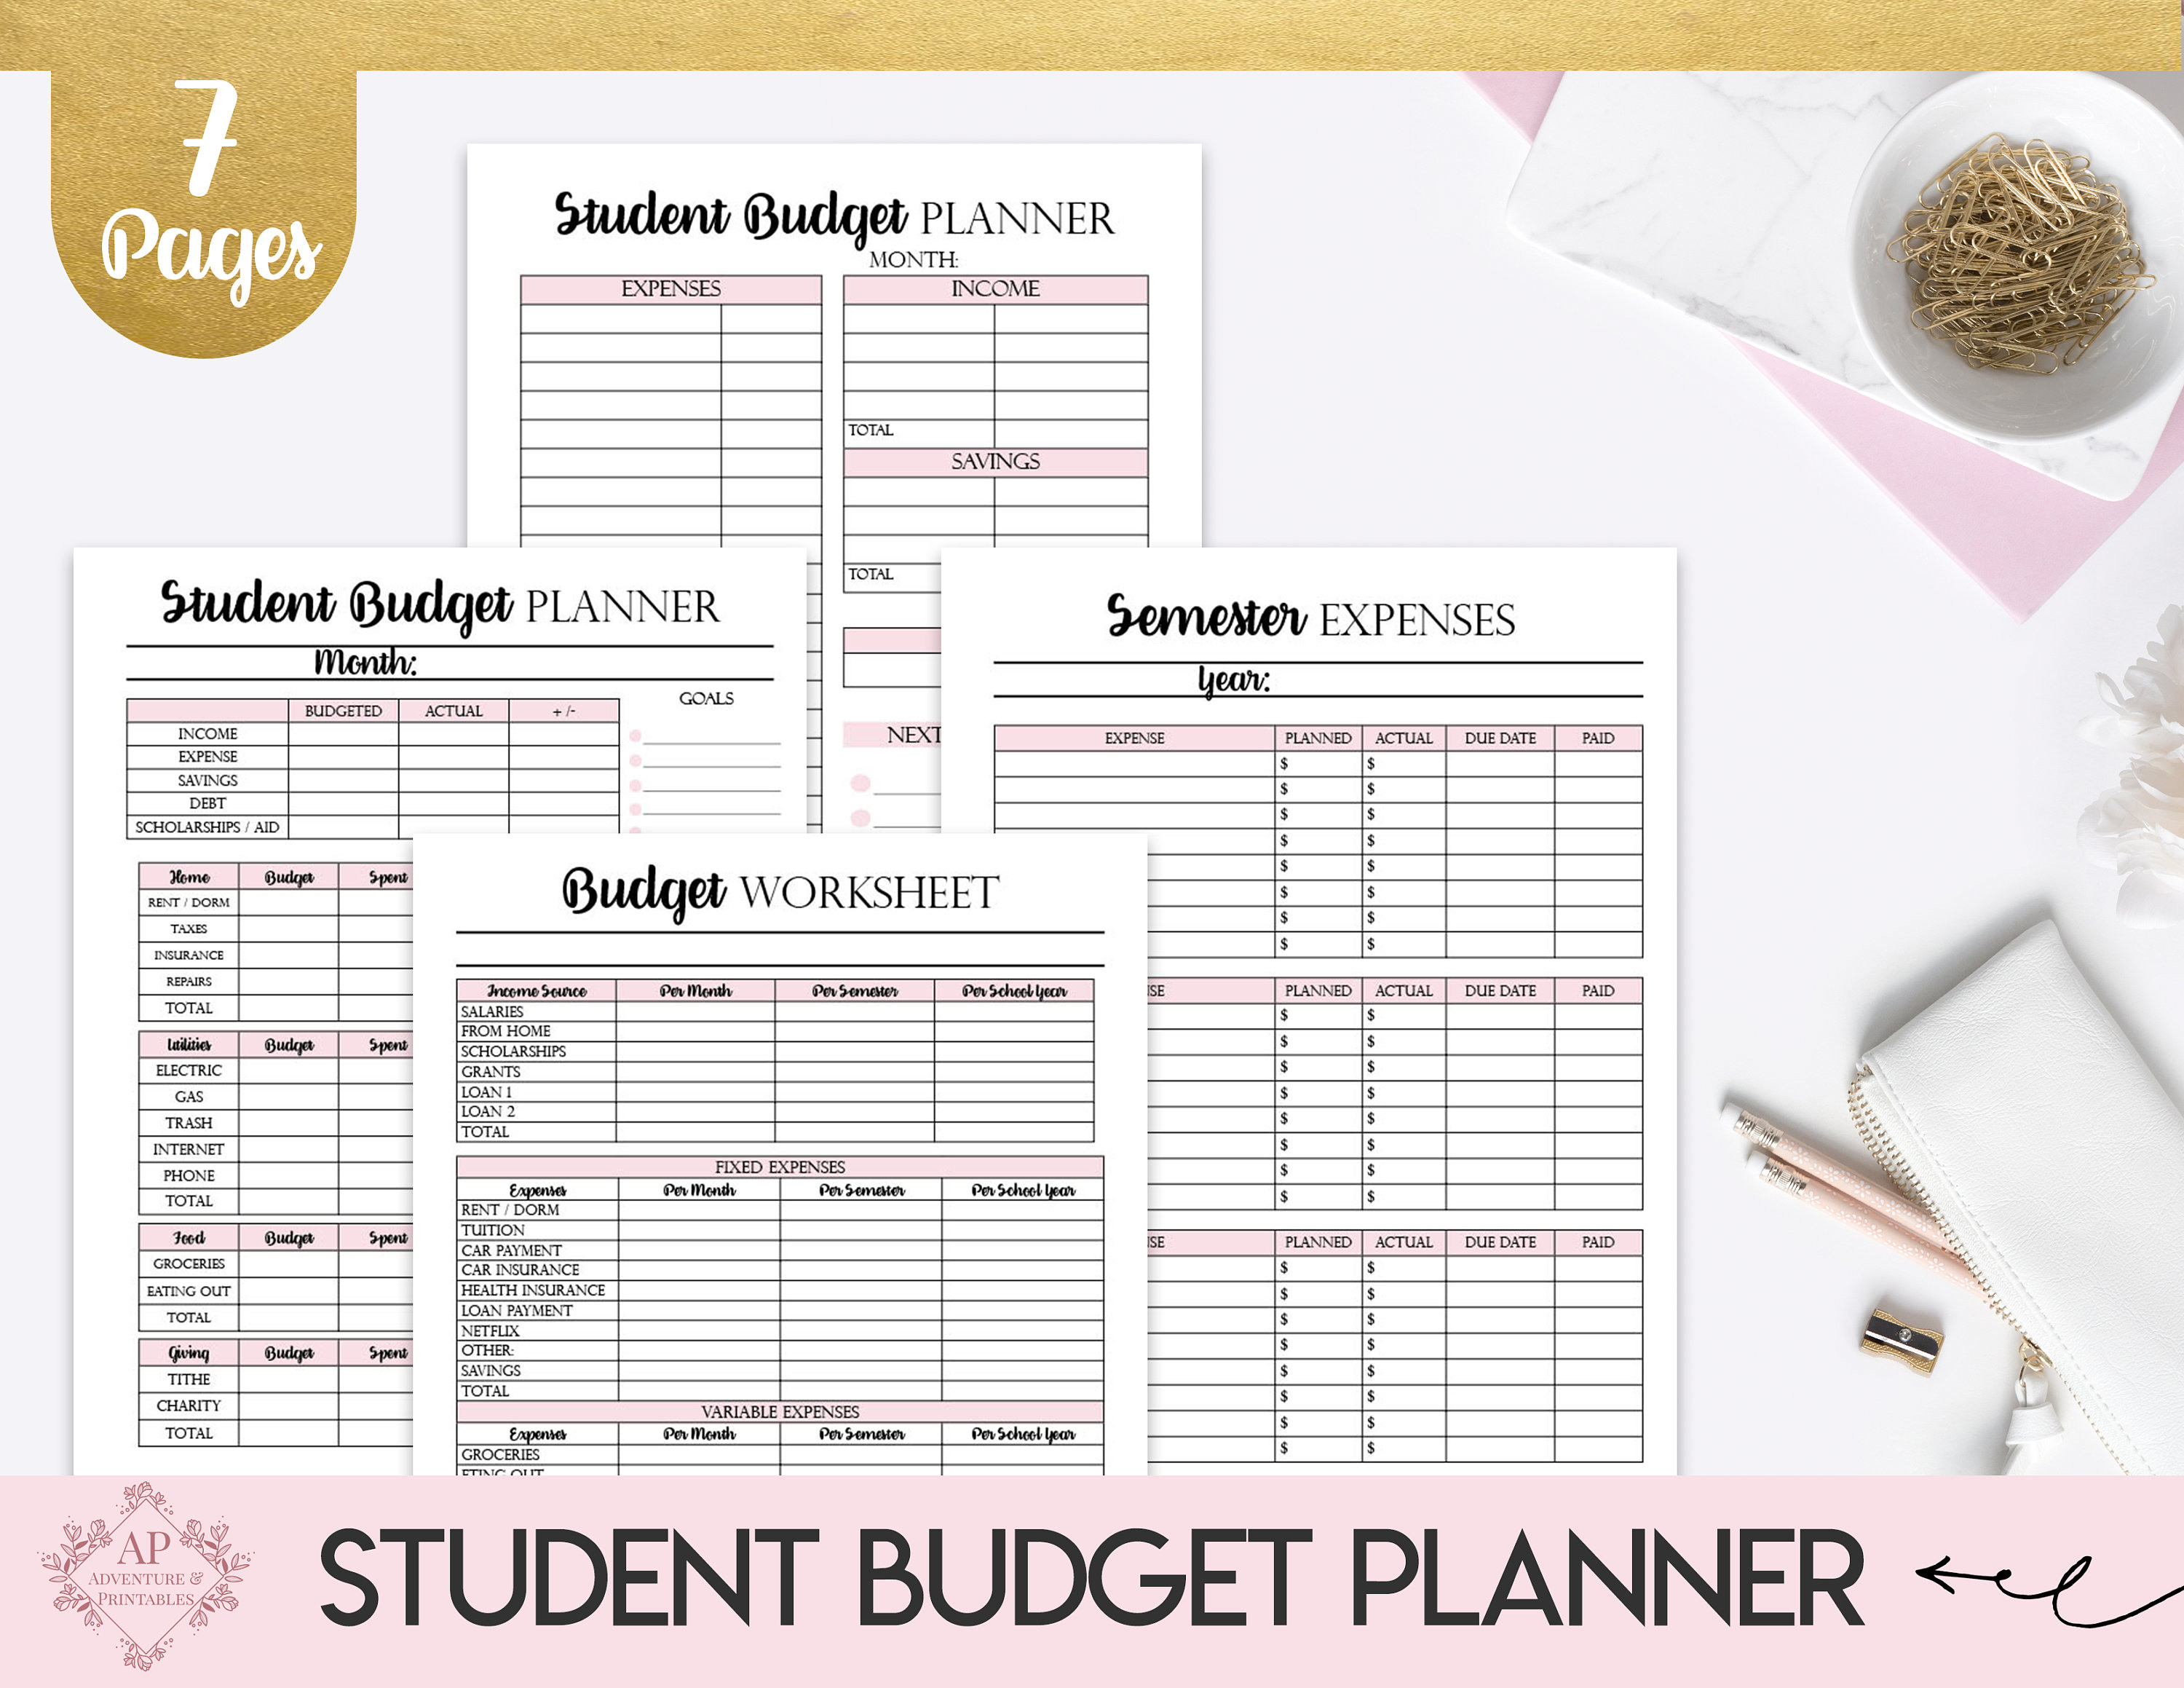 Student Budget Planner Collage Student Budget Worksheet Semester Expenses  List